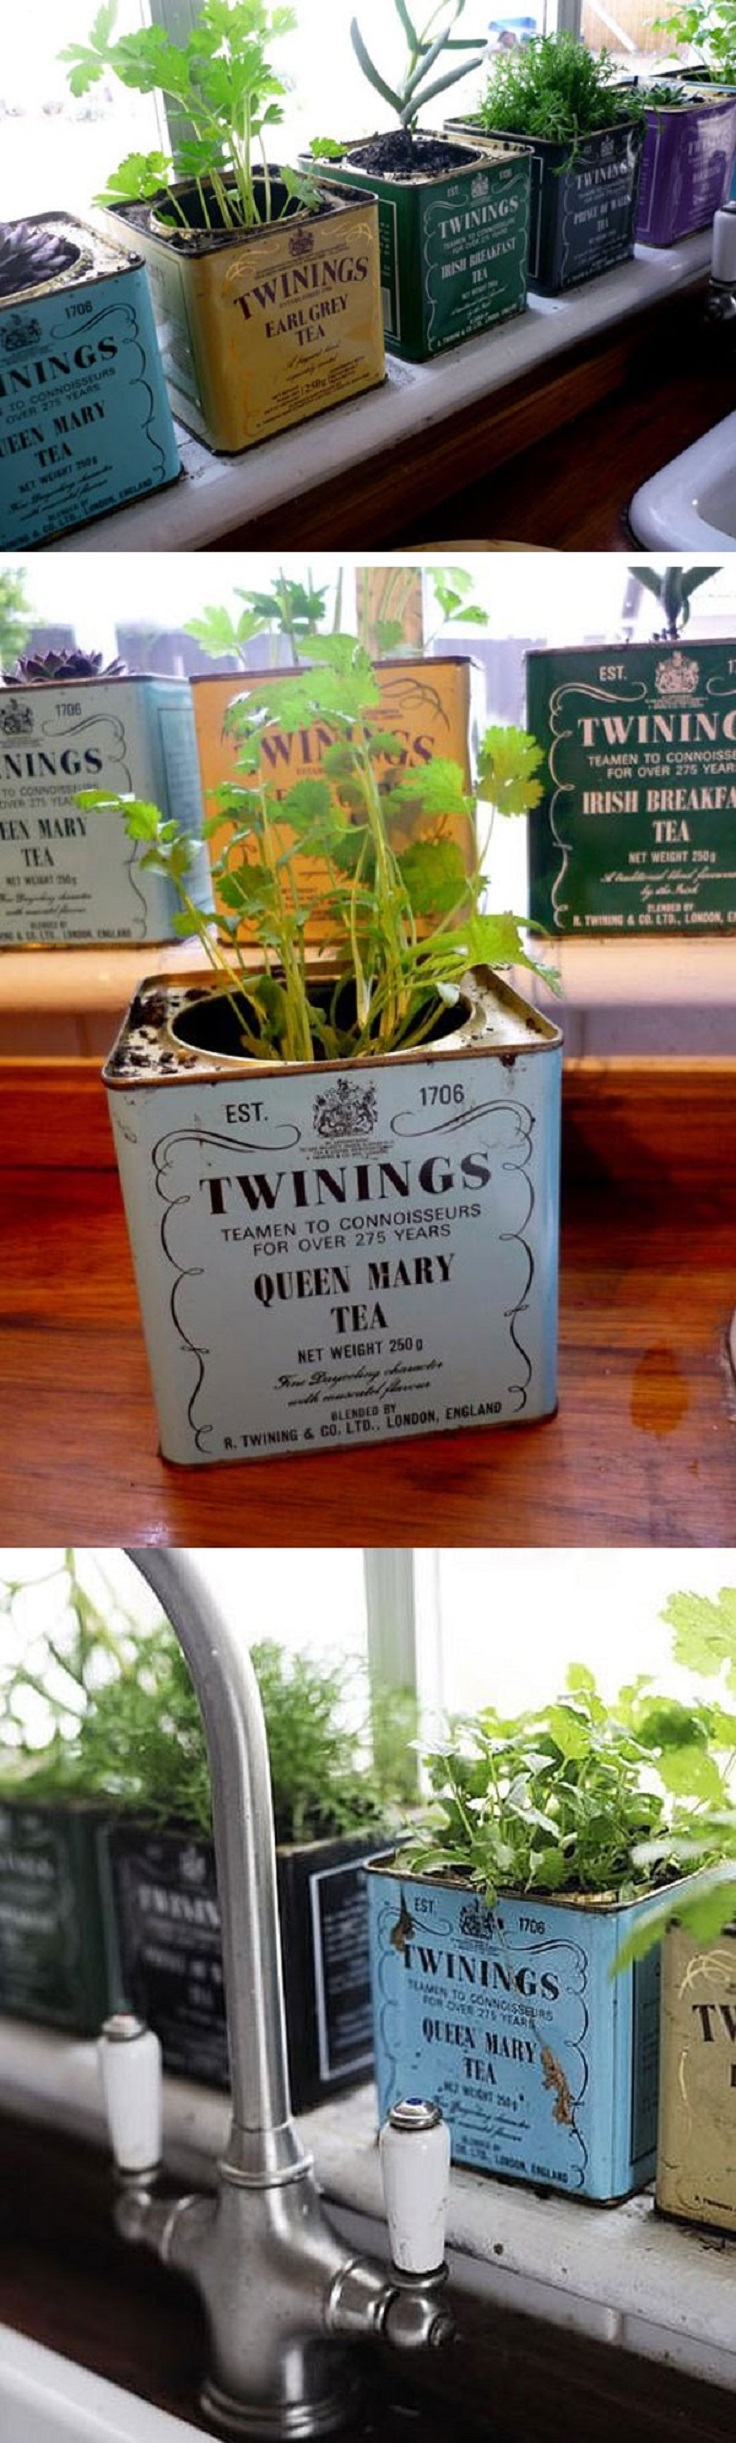 DIY-Twinings-Tea-Herb-Containers